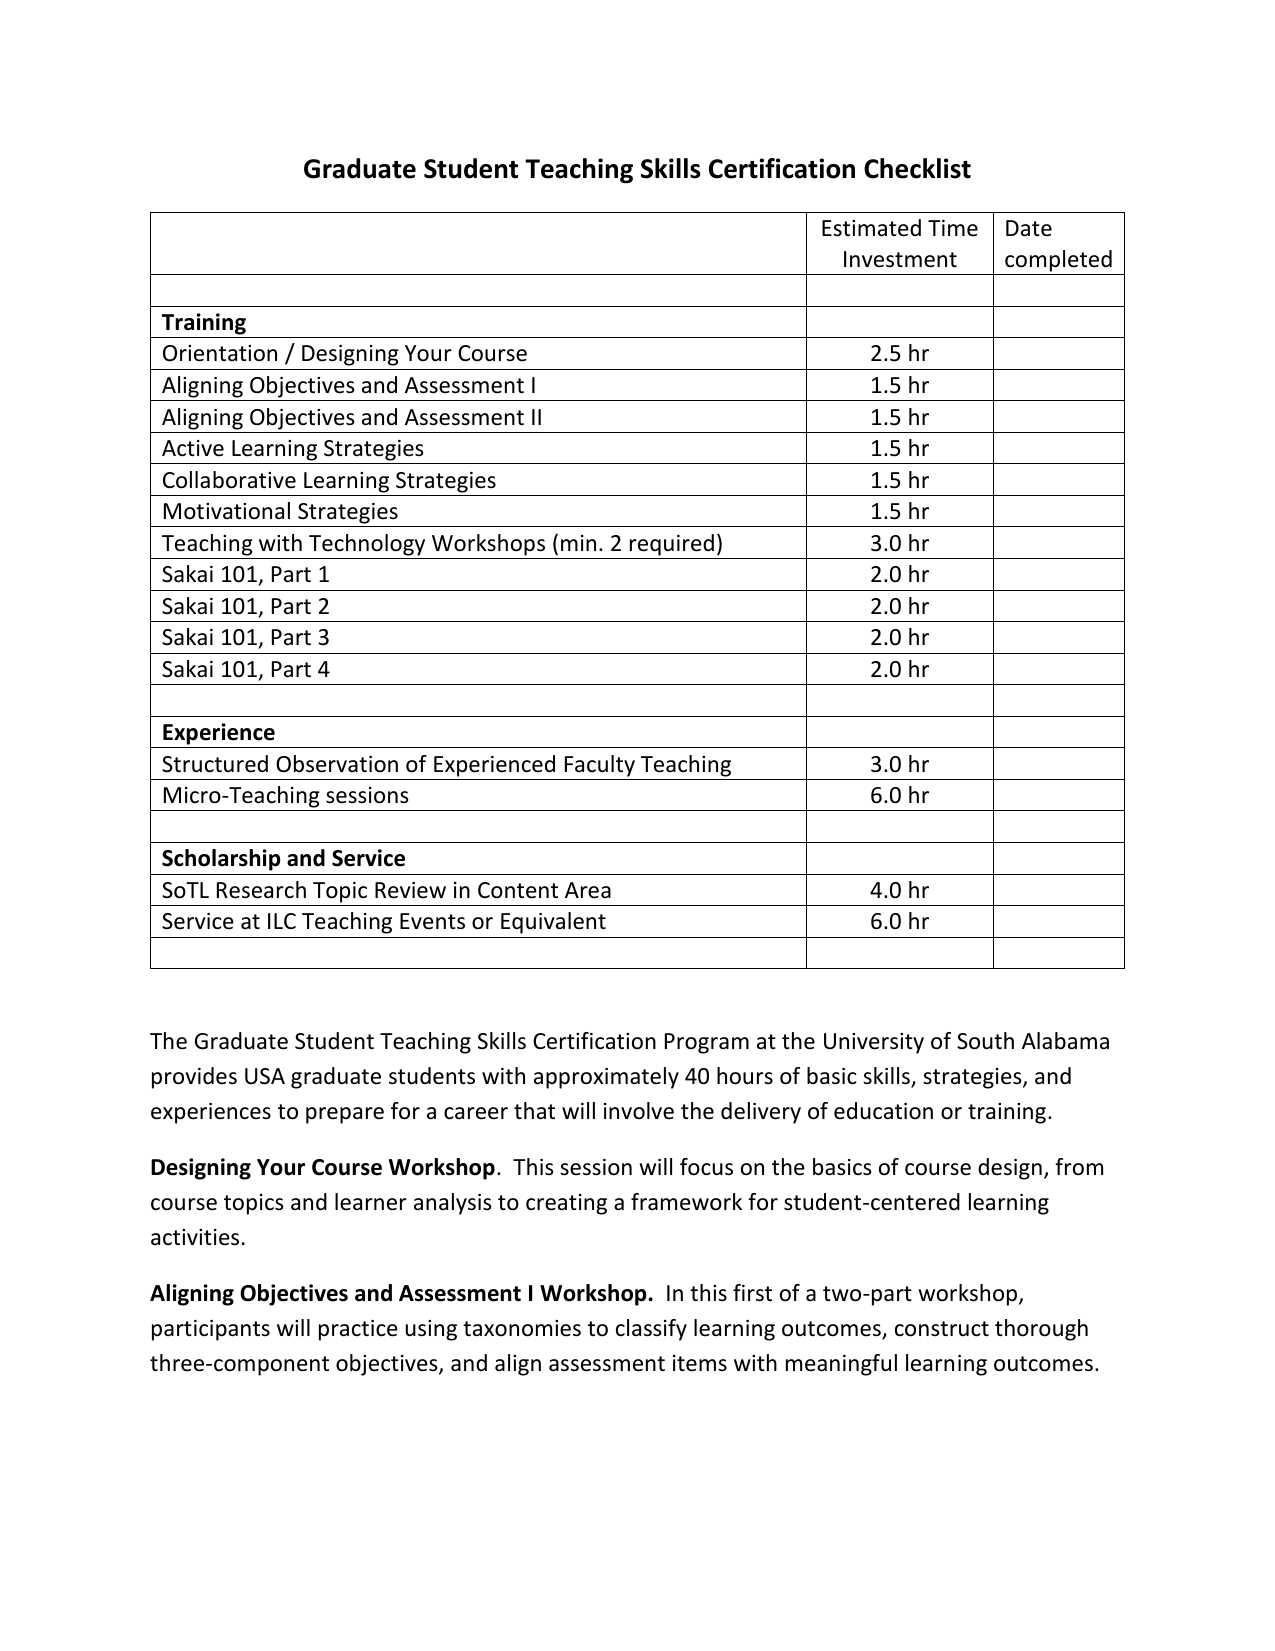 Graduate Student Teaching Skills Certification Checklist